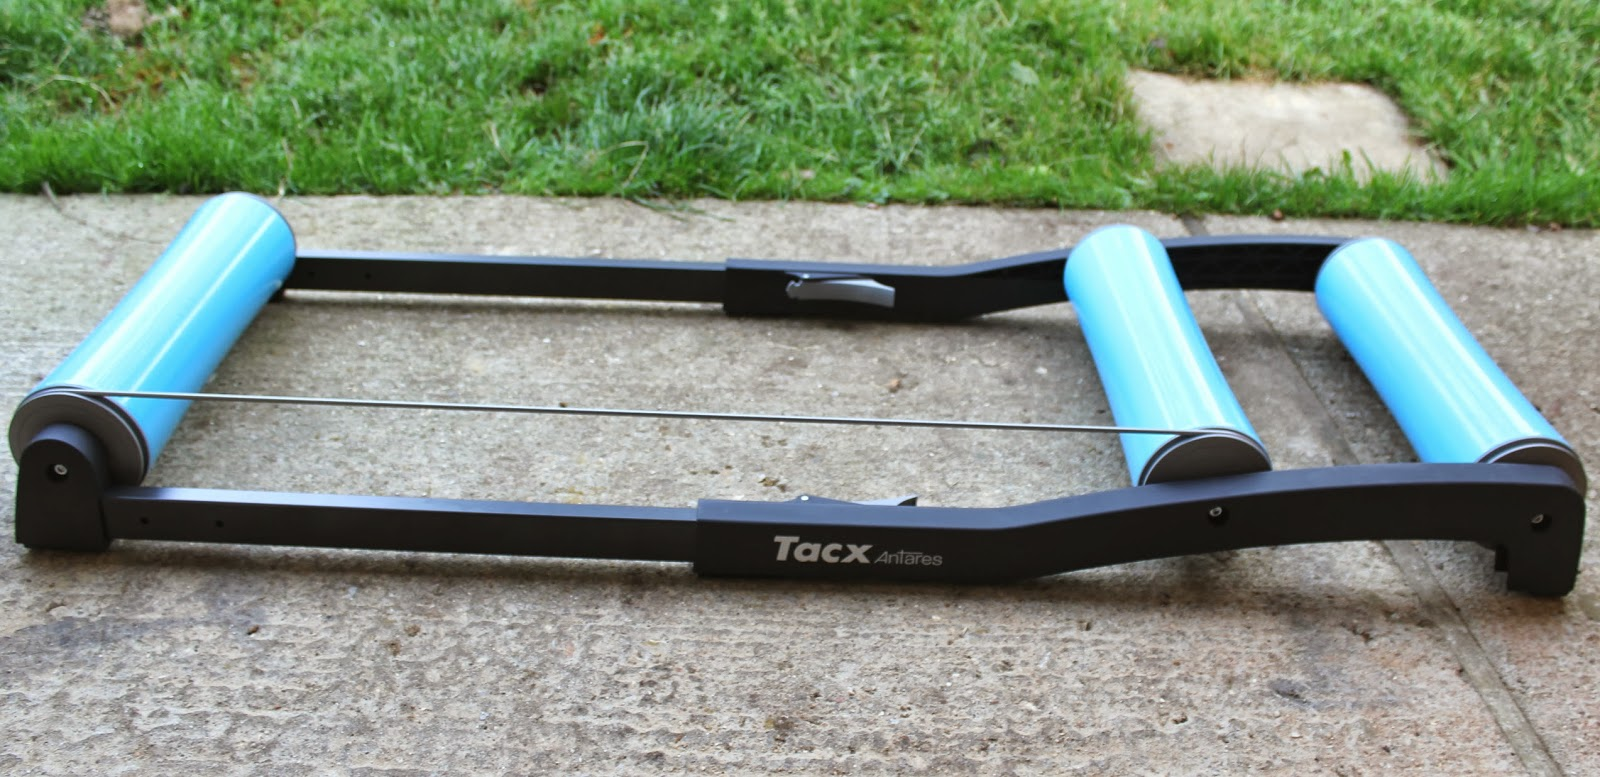 Tacx Antares Rollers Review Tim Wiggins